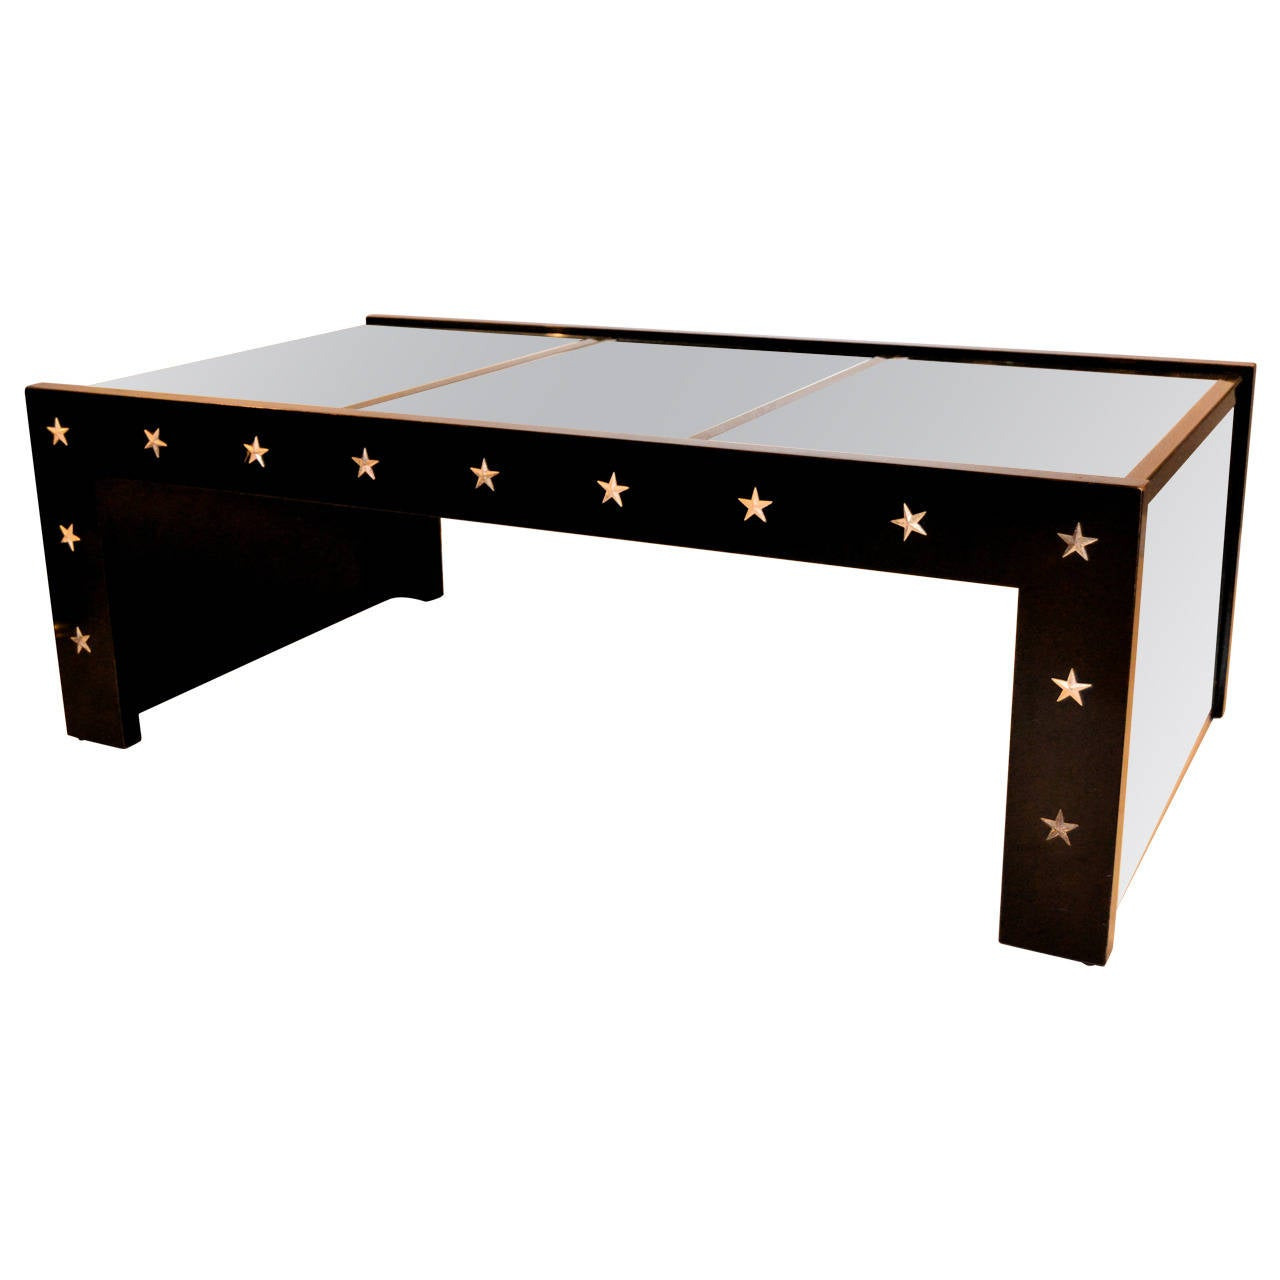 1970s Mirrored Coffee Table In The Manner Of Jansen For Sale At 1stdibs